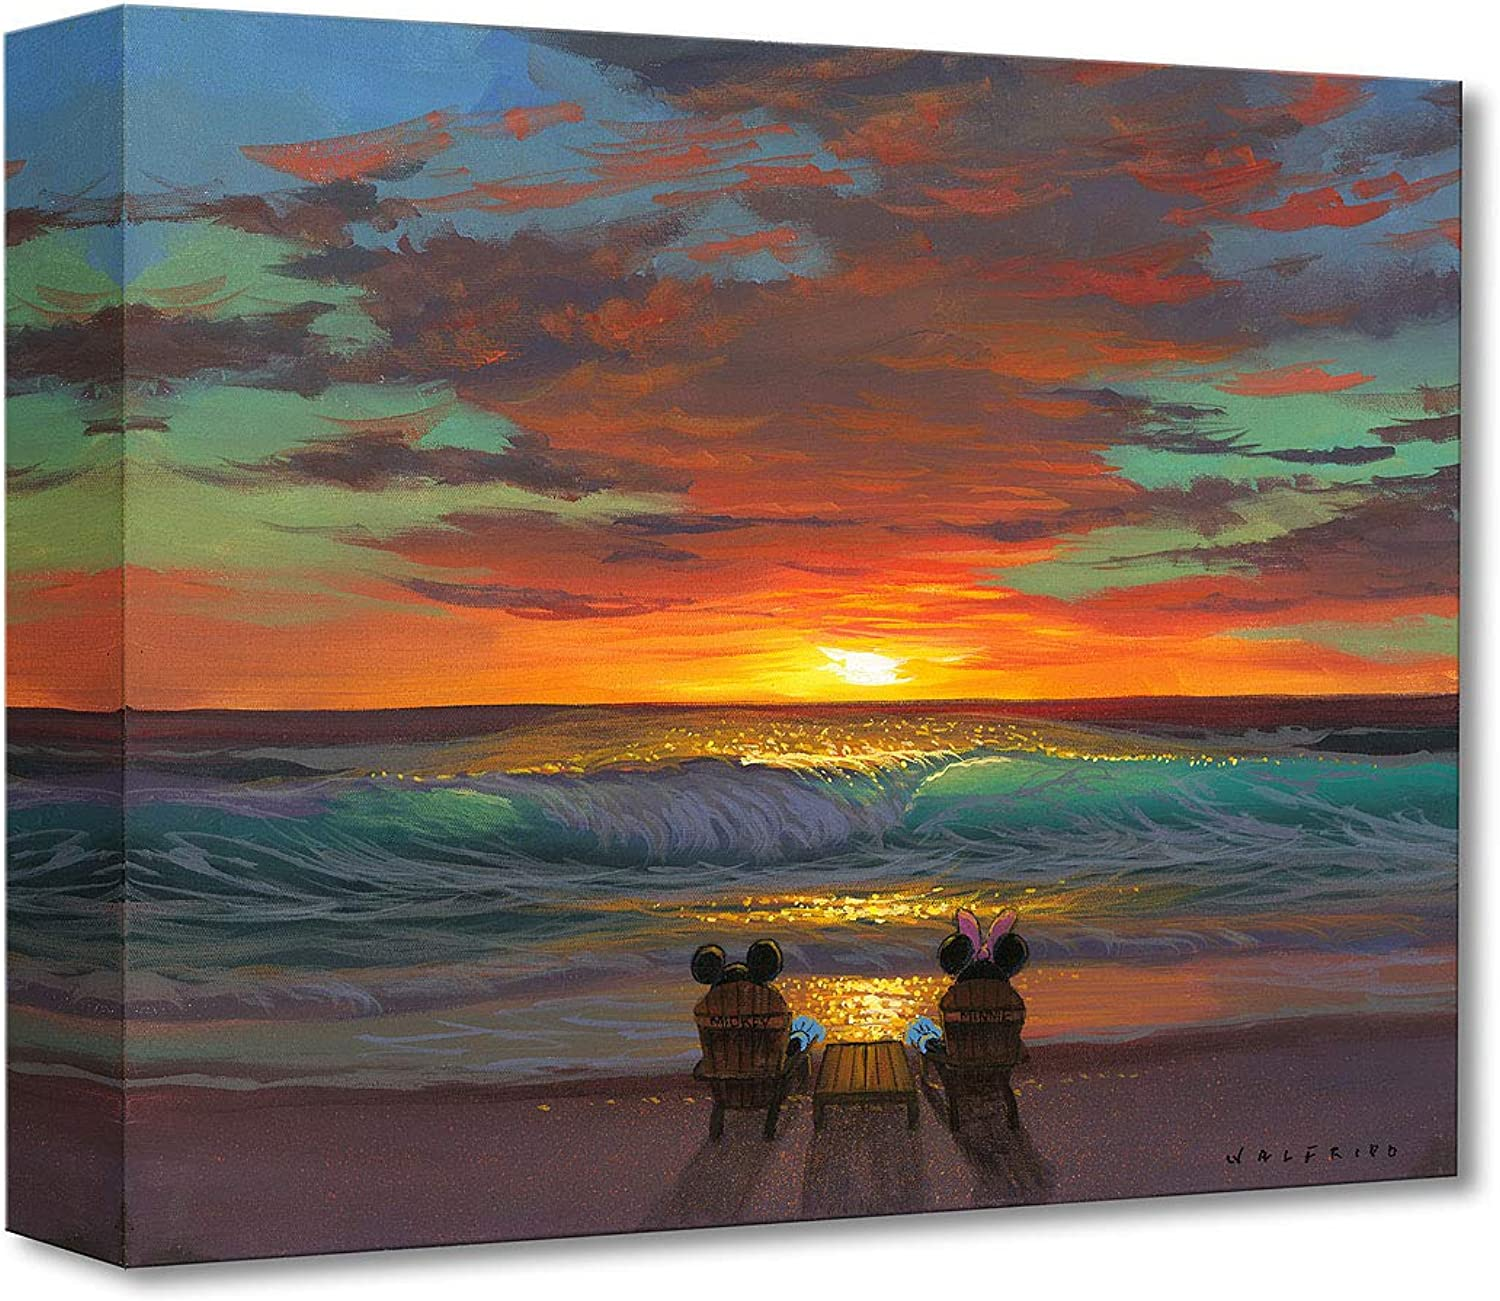 Disney Fine Art Sharing a Sunset by Walfrido Garcia Treasures on Canvas Mickey and Minnie Mouse 12 Inches x 16 Inches Reproduction Gallery Wrapped Giclée on Canvas Wall Art